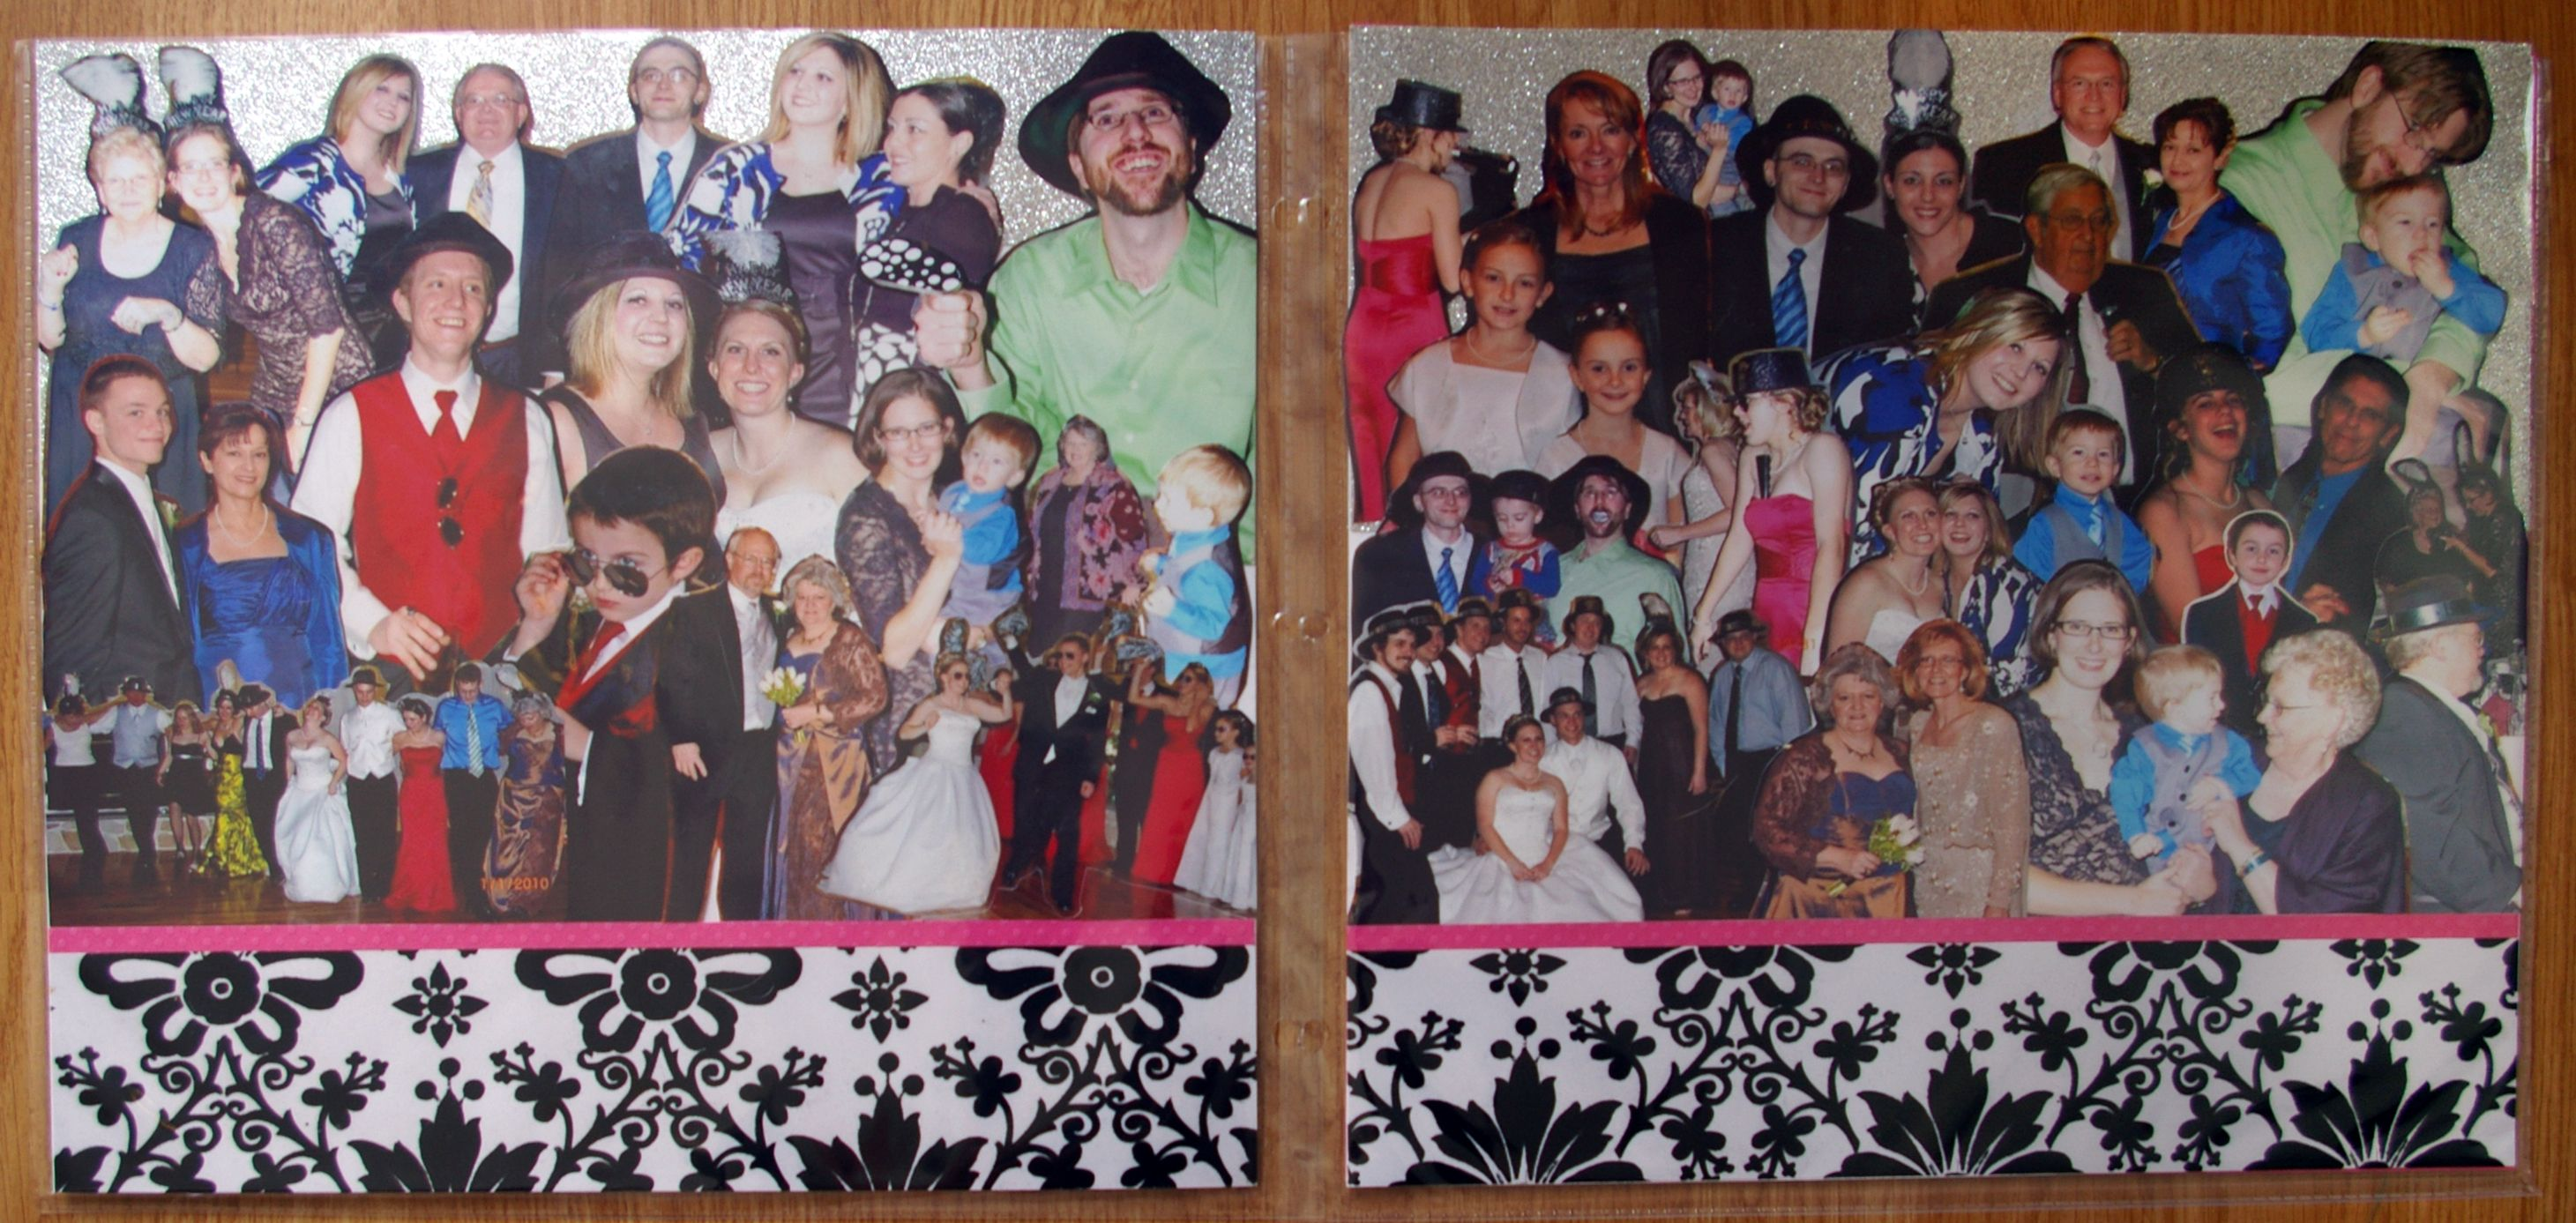 32 photos!  The best layout for a wedding or other event where you have tons of photos of smiling faces in groups. Cut around the people and make a collage.